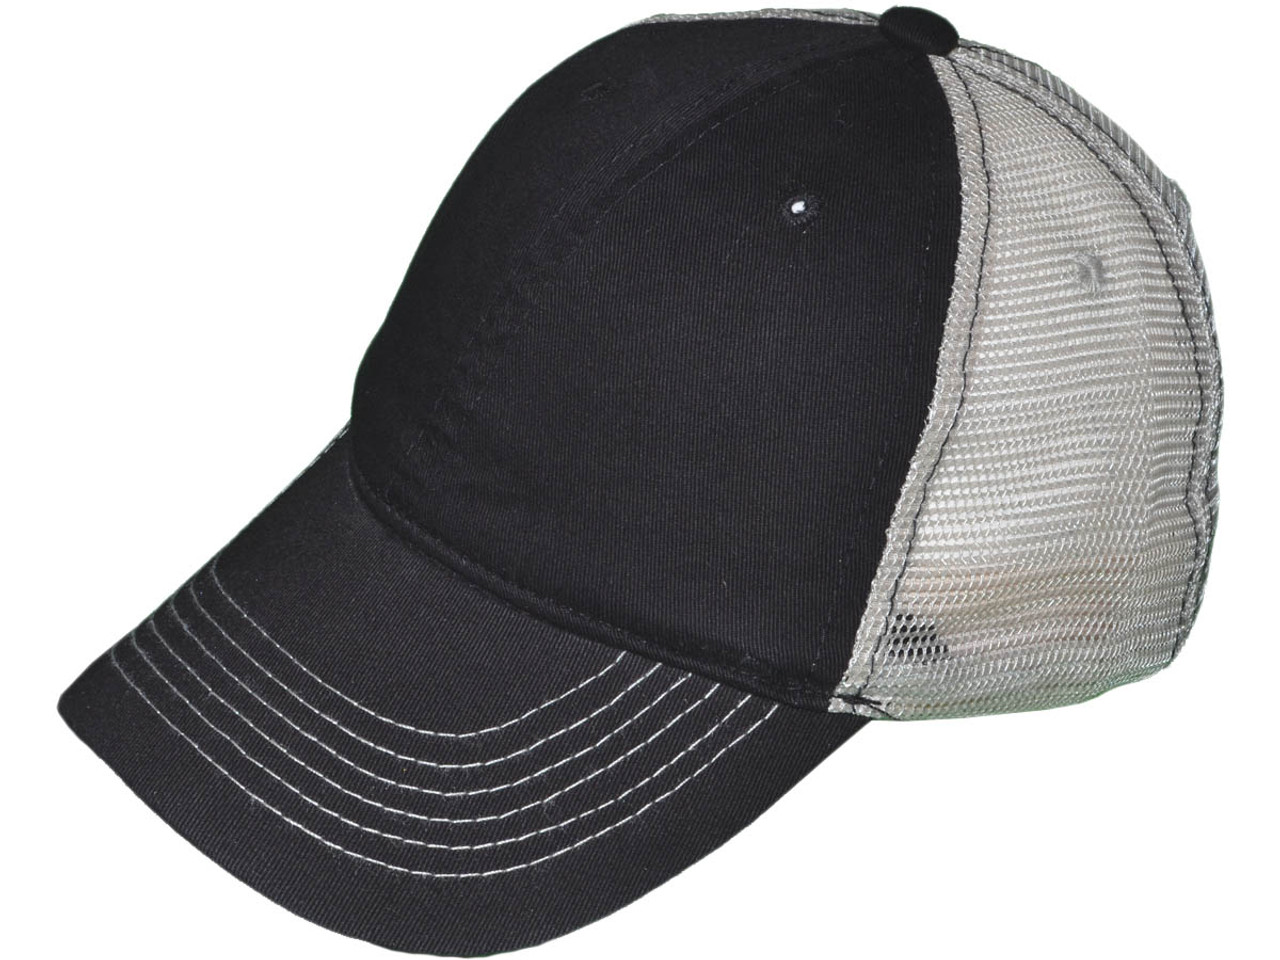 Wholesale Unstructured Trucker Hats - BK Caps Low Profile 6 Panel ... bf01351f3743